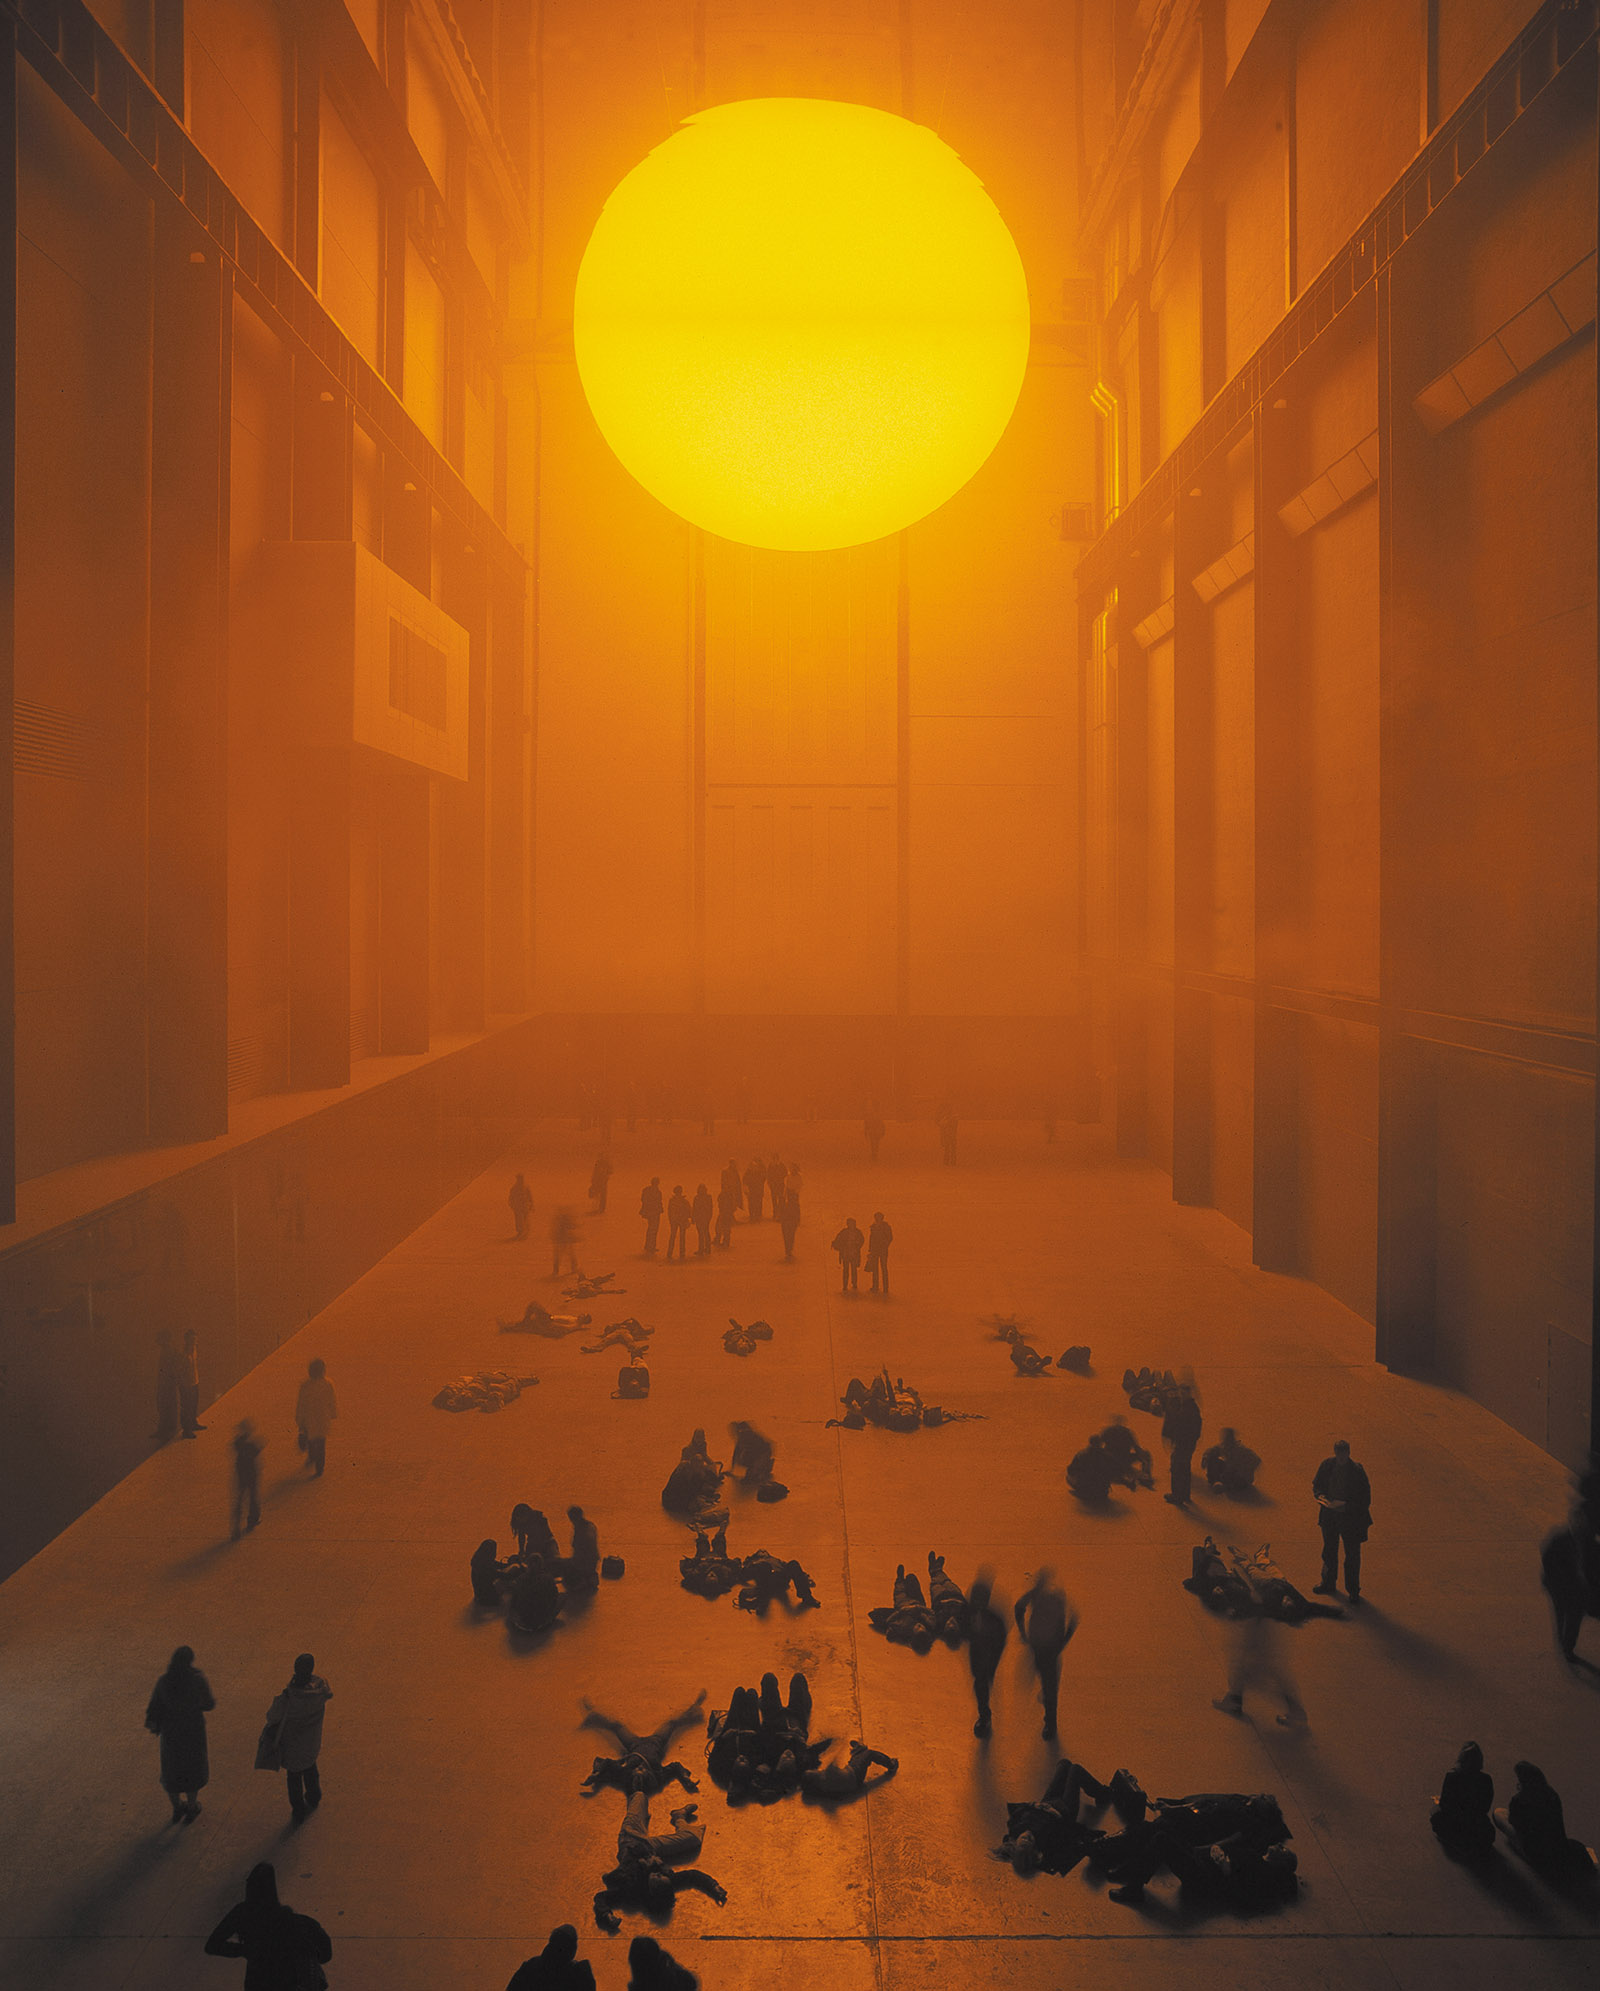 Photograph of Olafur Eliasson's The weather project